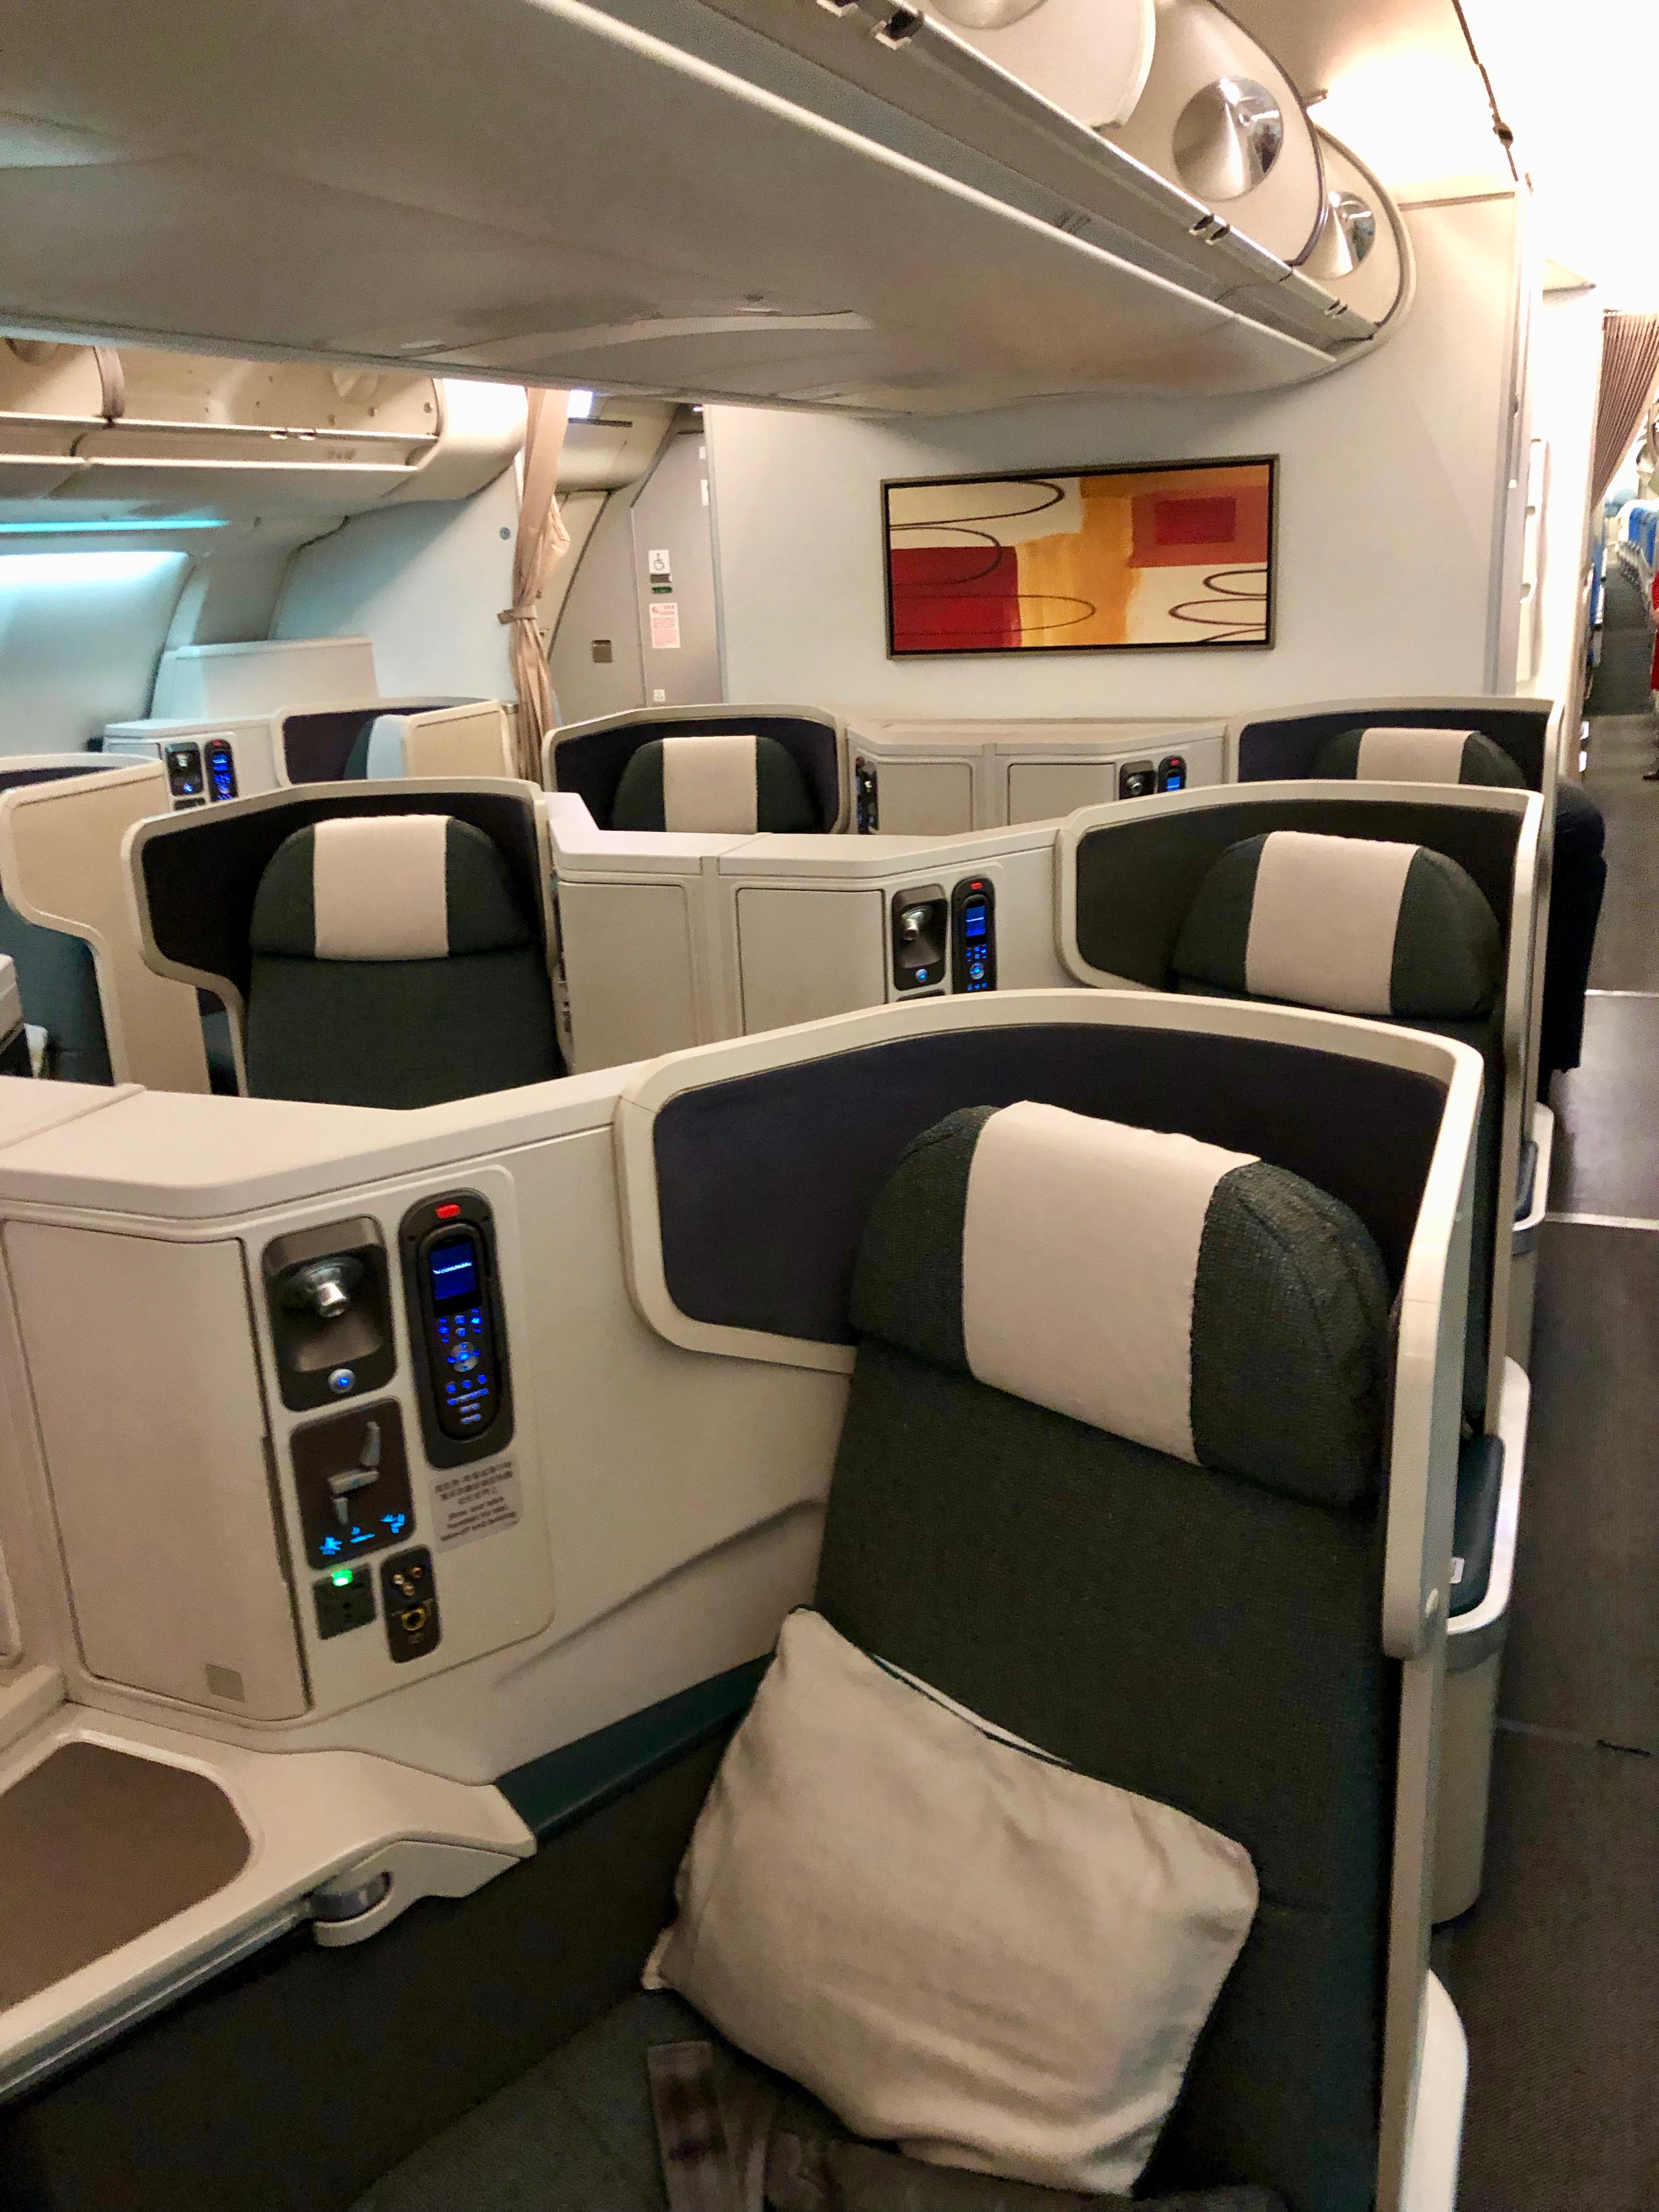 Cathay Pacific Airbus A330-300 business class cabin